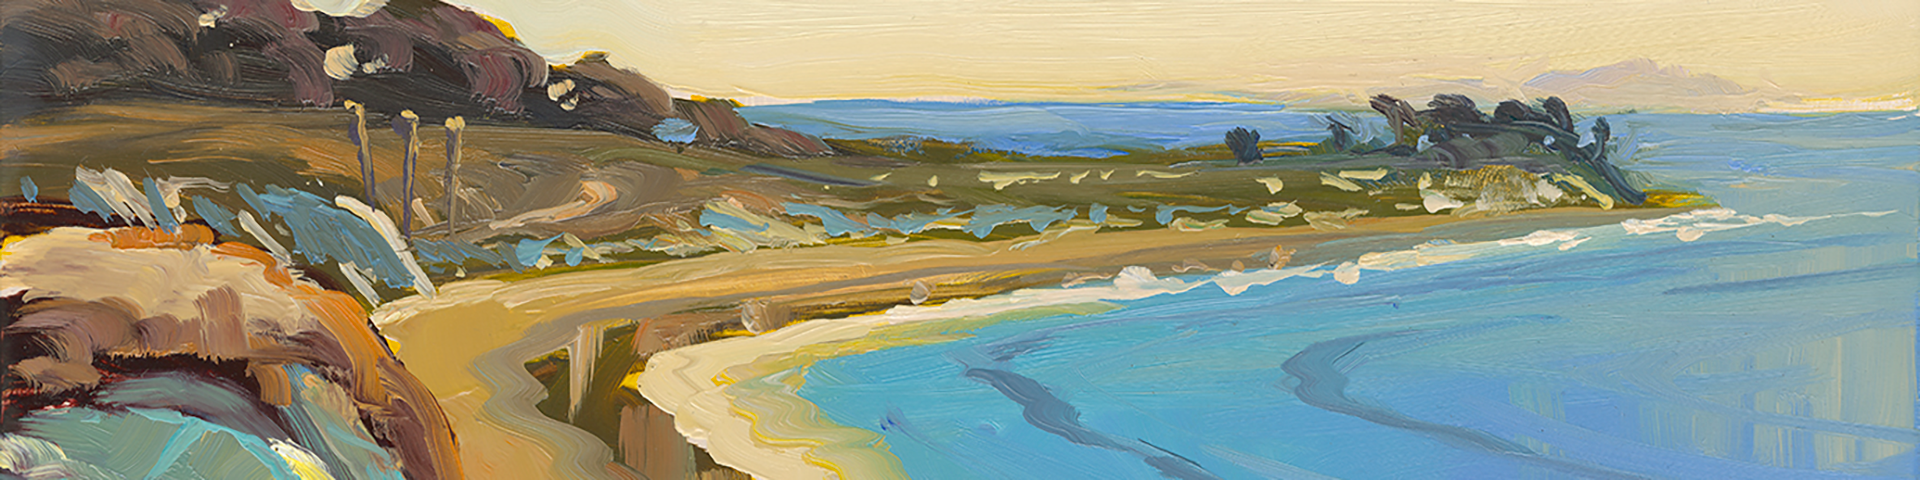 Devereux Point Memory by Chris Potter (detail)